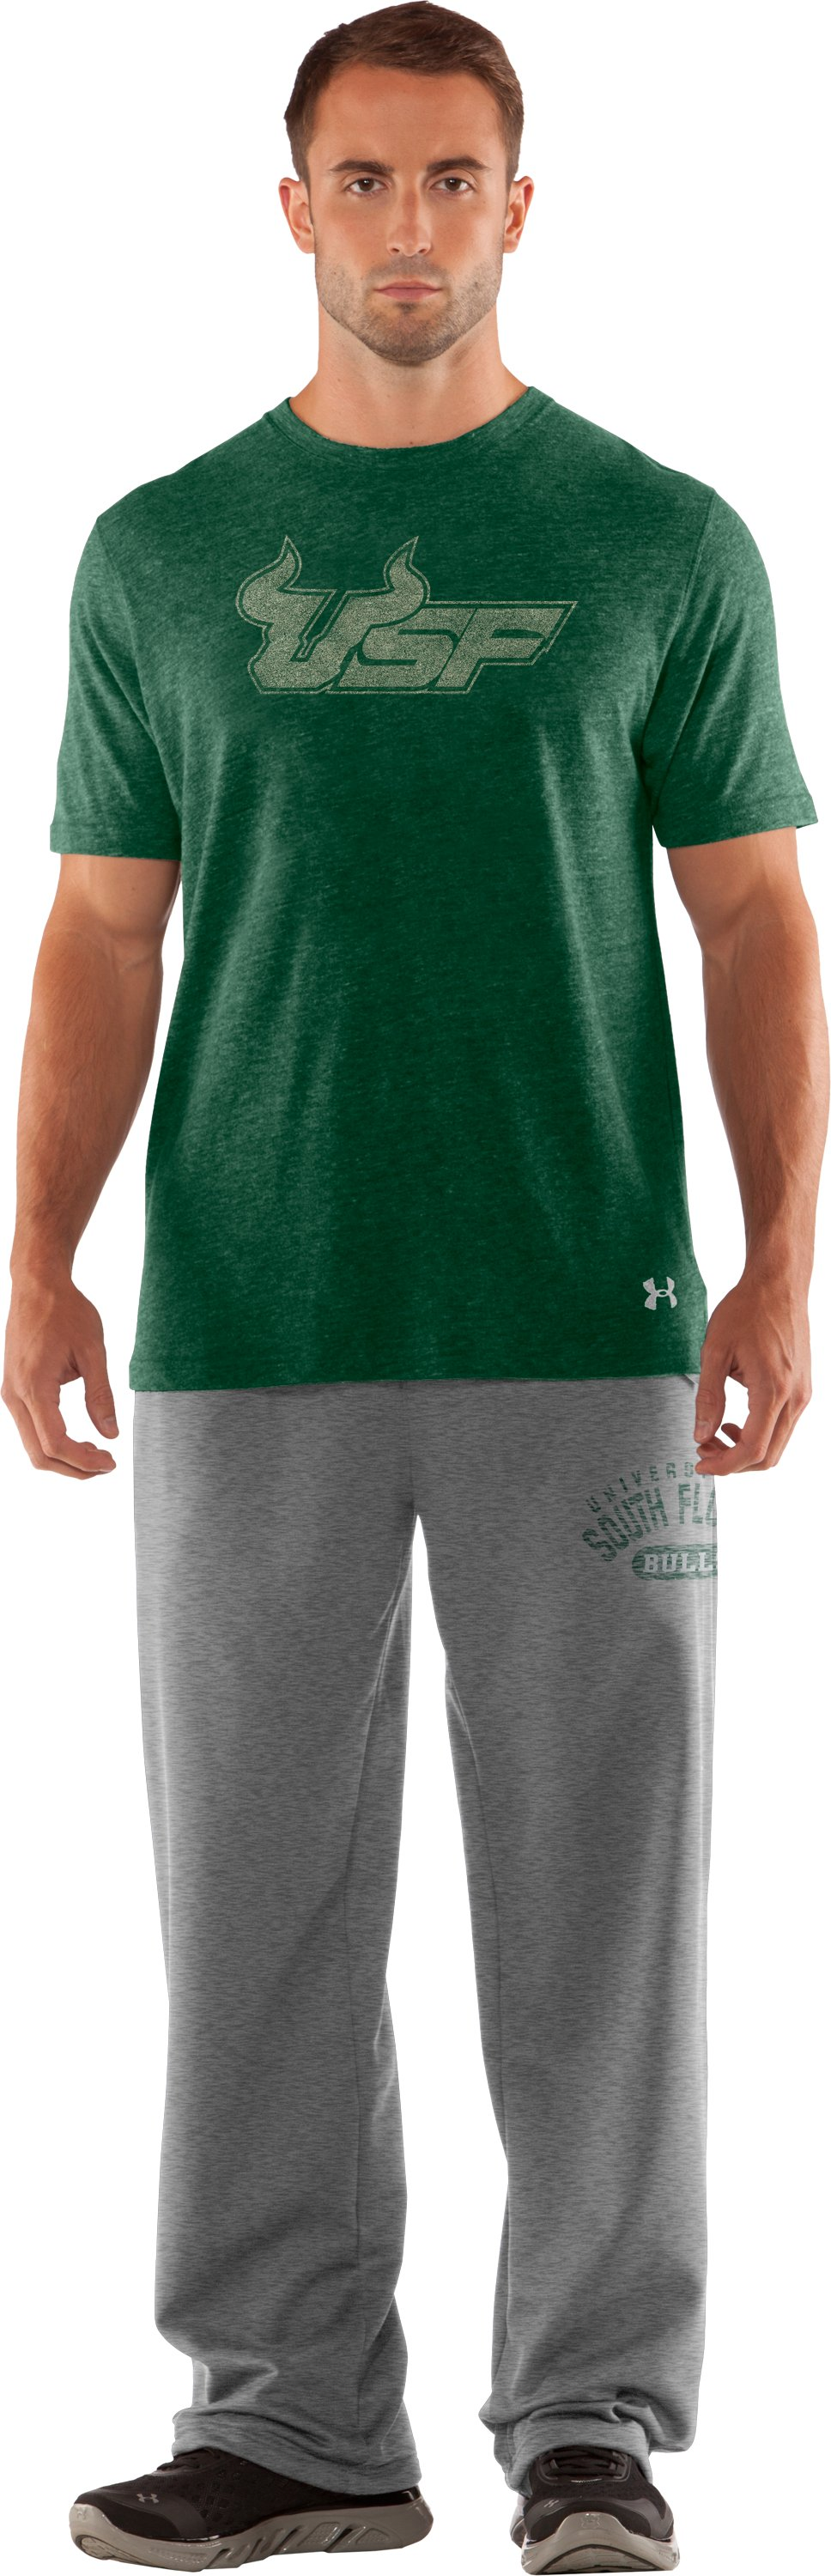 Men's South Florida Under Armour® Legacy Pants, True Gray Heather